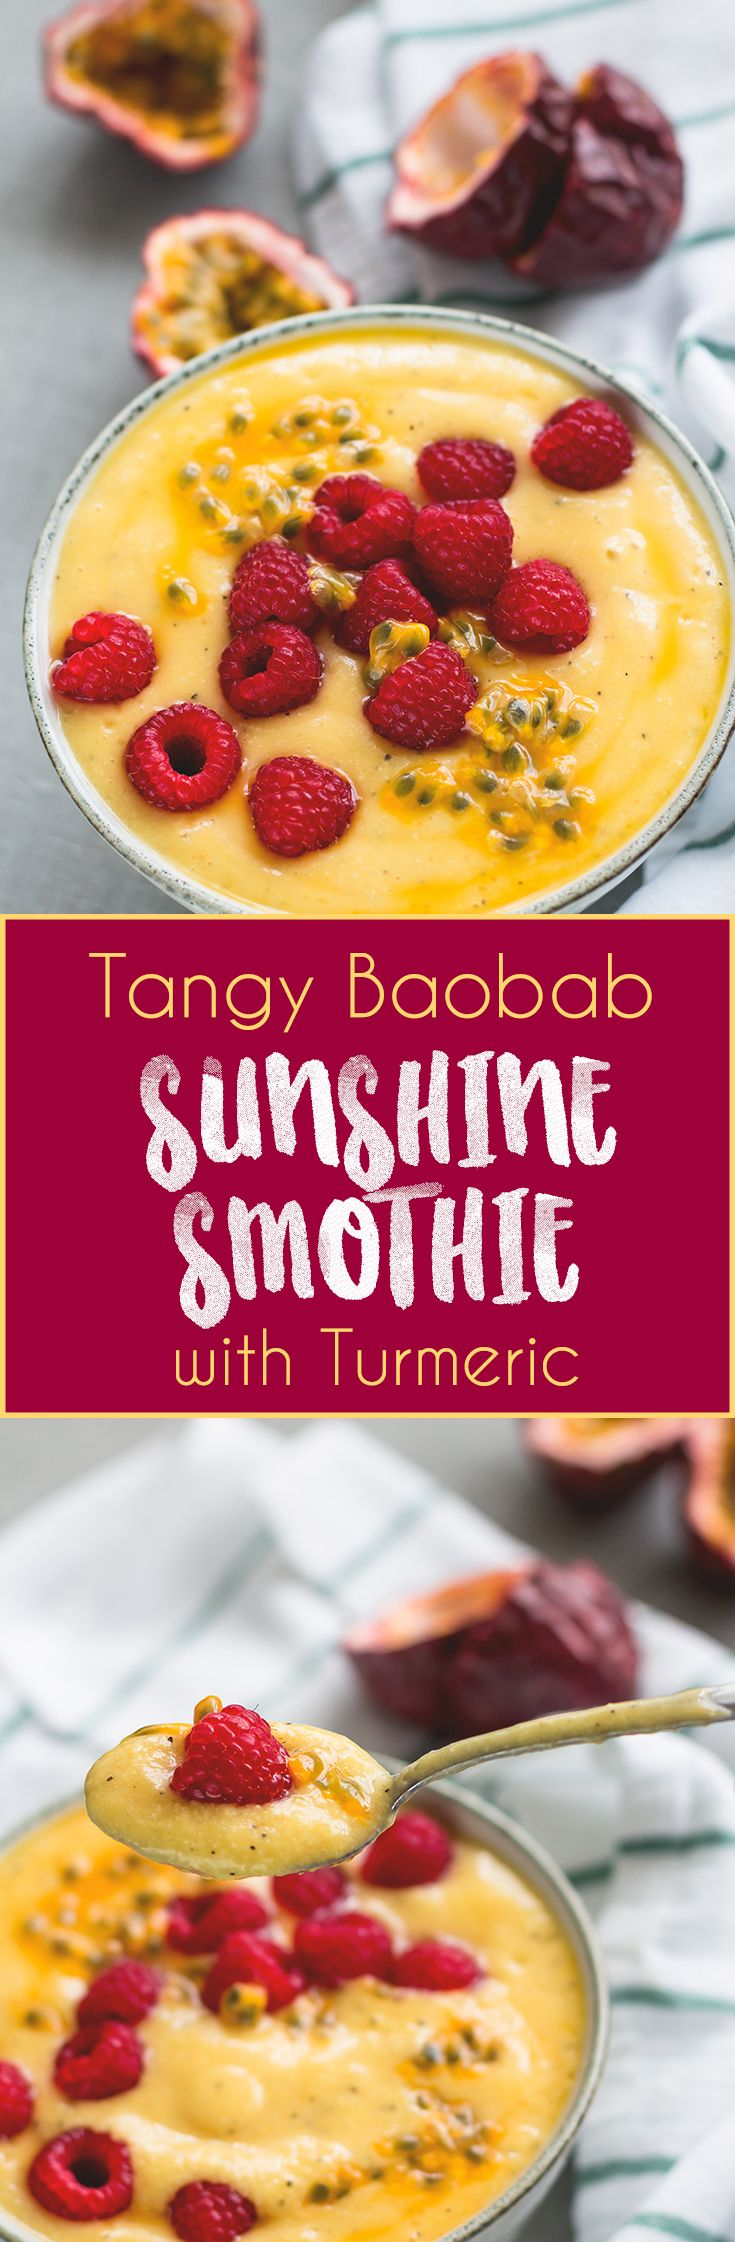 Tangy Baobab Sunshine Smoothie - the perfect summer smoothie! I love this recipe, it's easy, delicious, and filling. Baobab, mango, pineapple, passion fruit, and turmeric. So GOOD! | thehealthfulideas.com